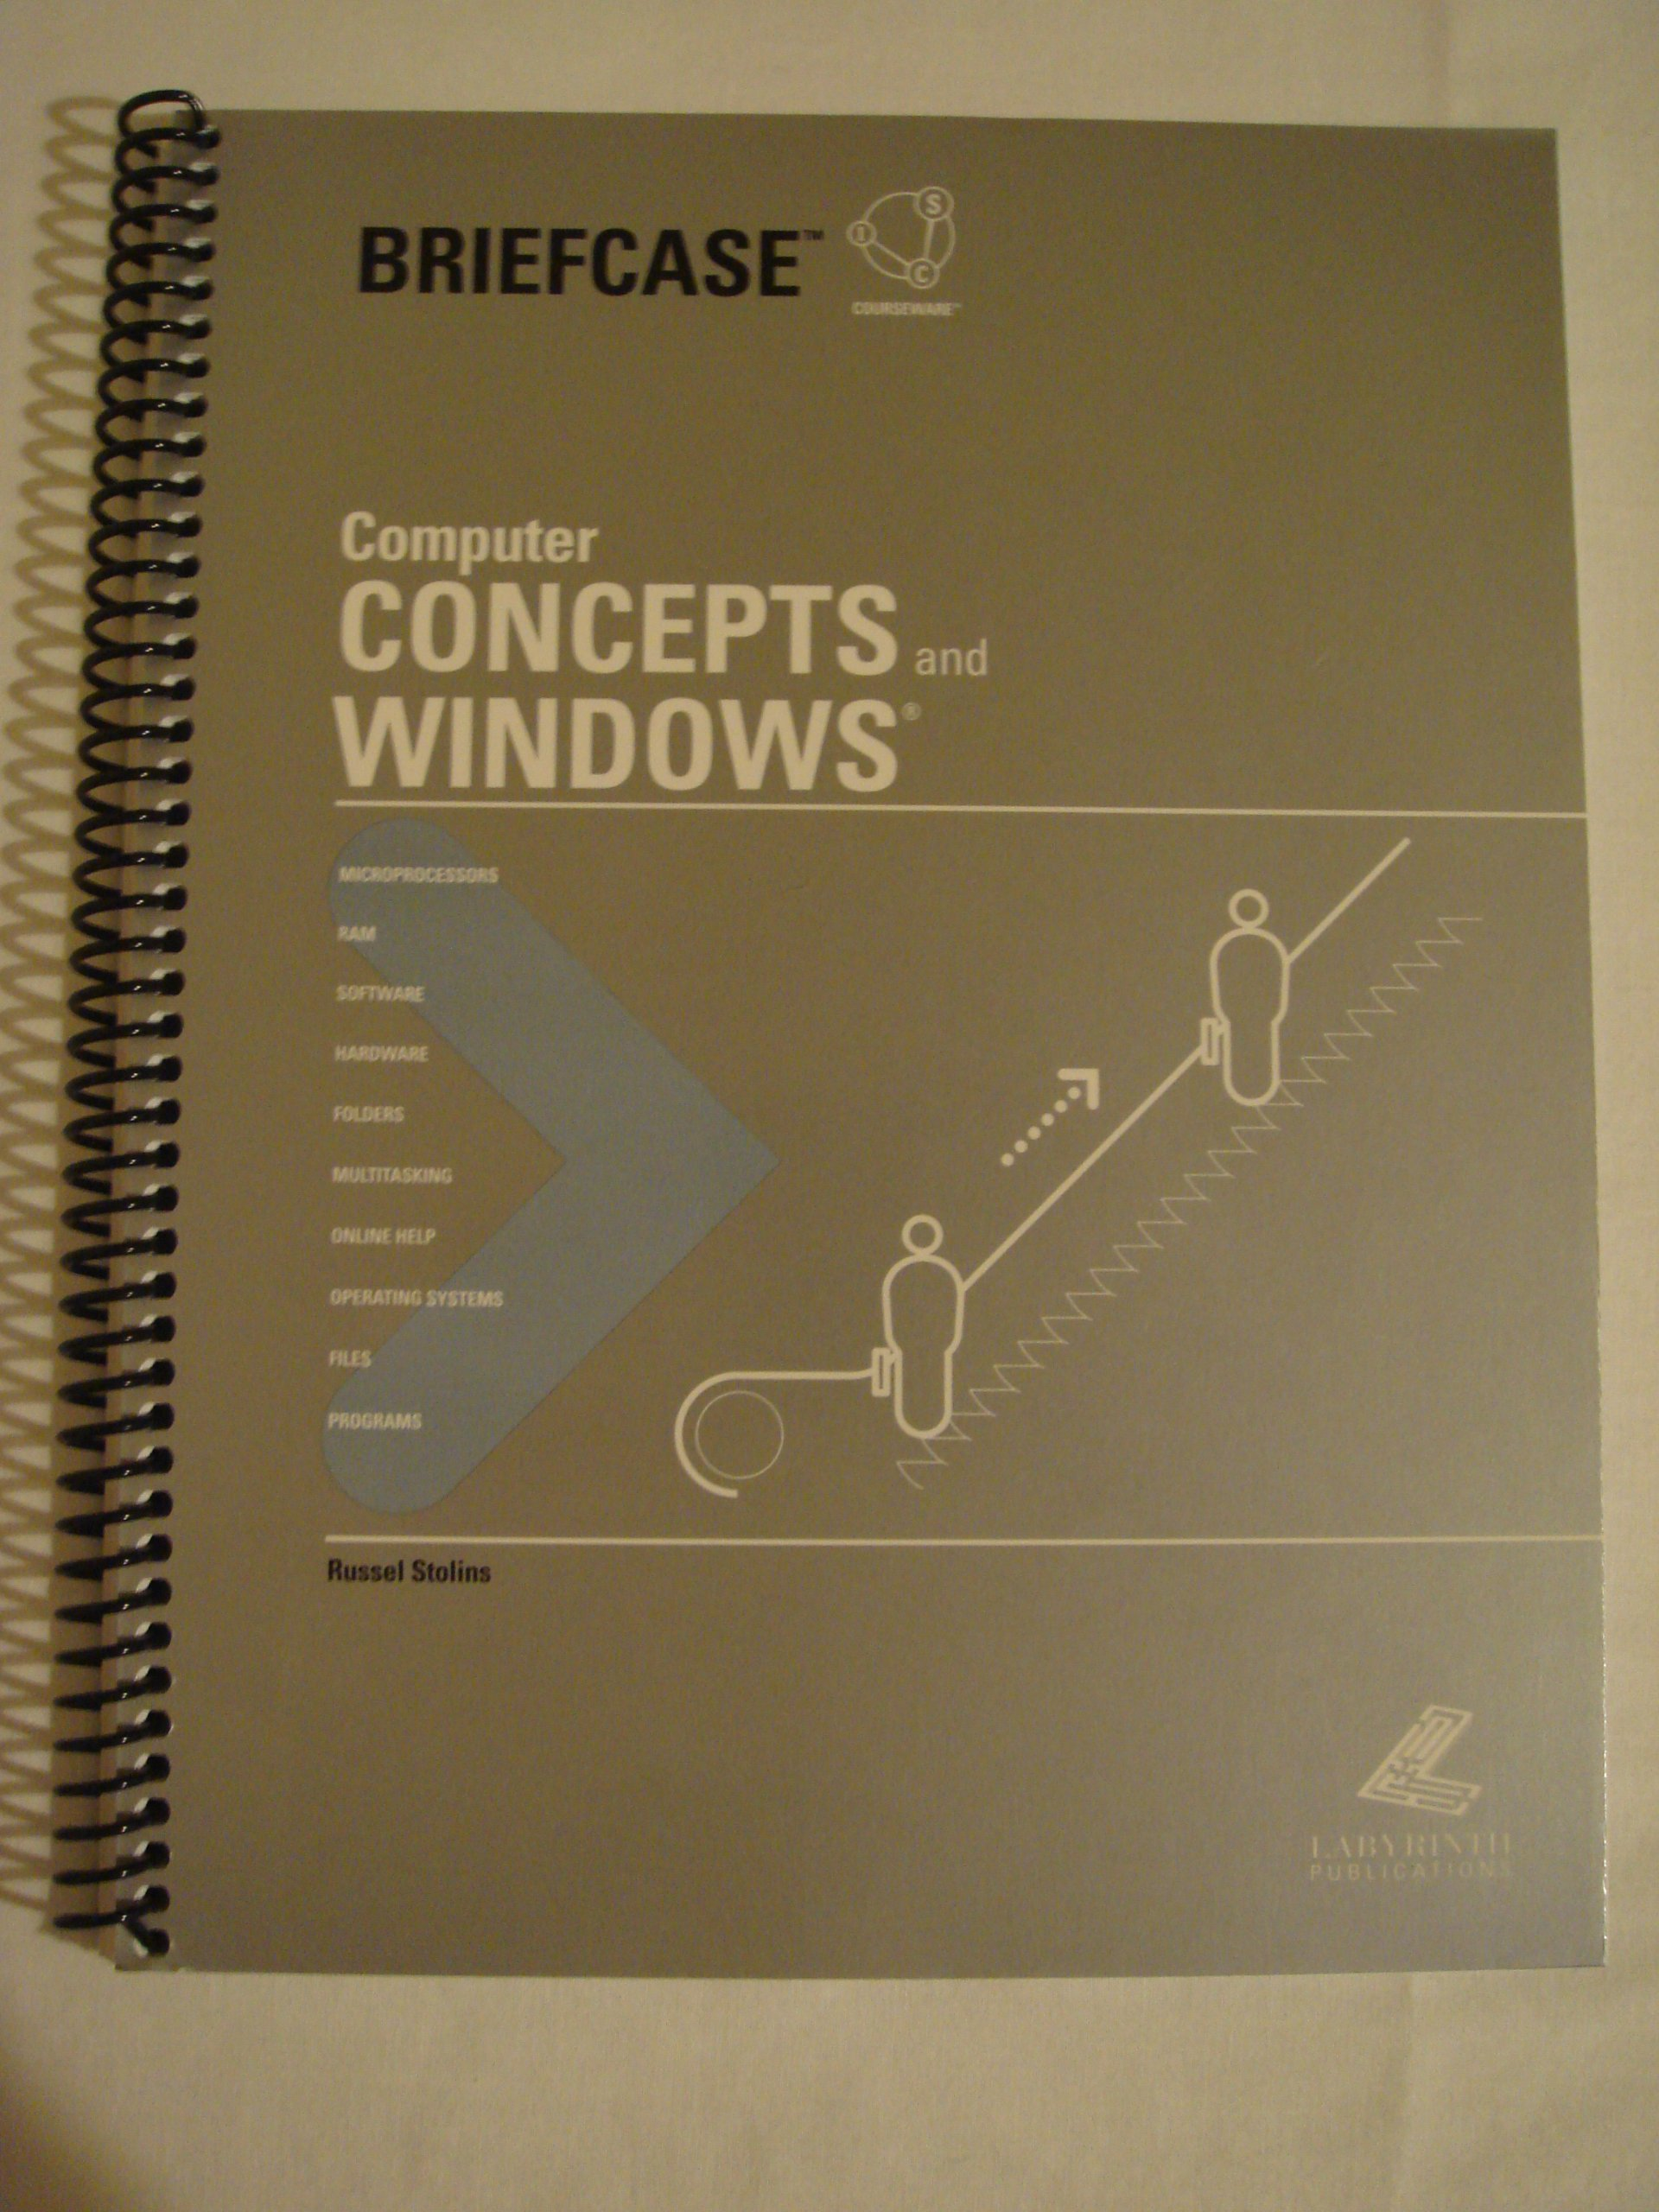 Computer Concepts And Windows (Briefcase Series for Office XP) ebook